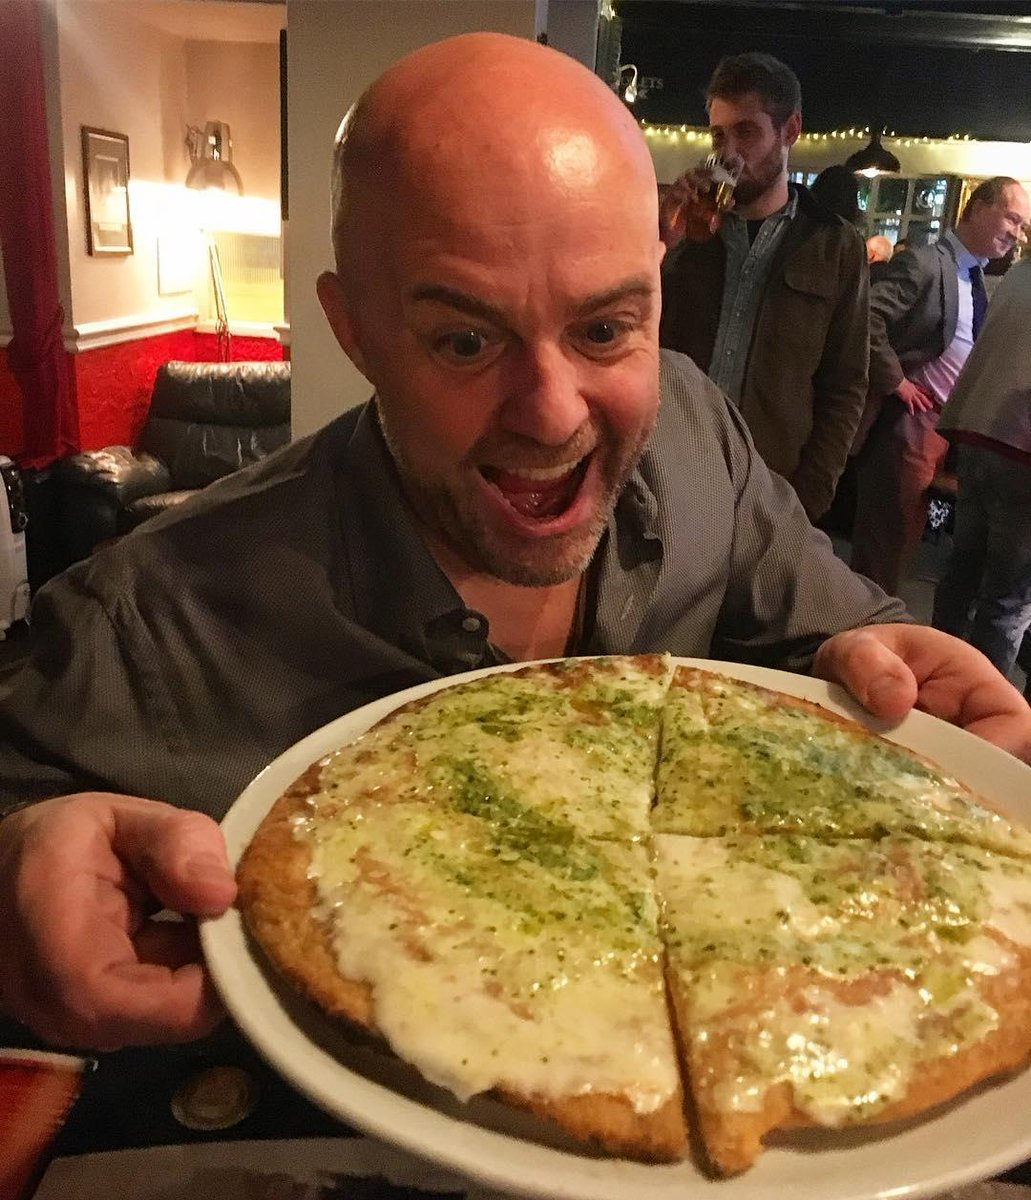 """Oscar is so excited having his """"Pesto e Stracchino"""" #Pizza. Which pizza is your favourite? @TheShakespeare1#lapialondon #theshakespearebarbican #barbicanpic.twitter.com/EsTS5XnWTx"""